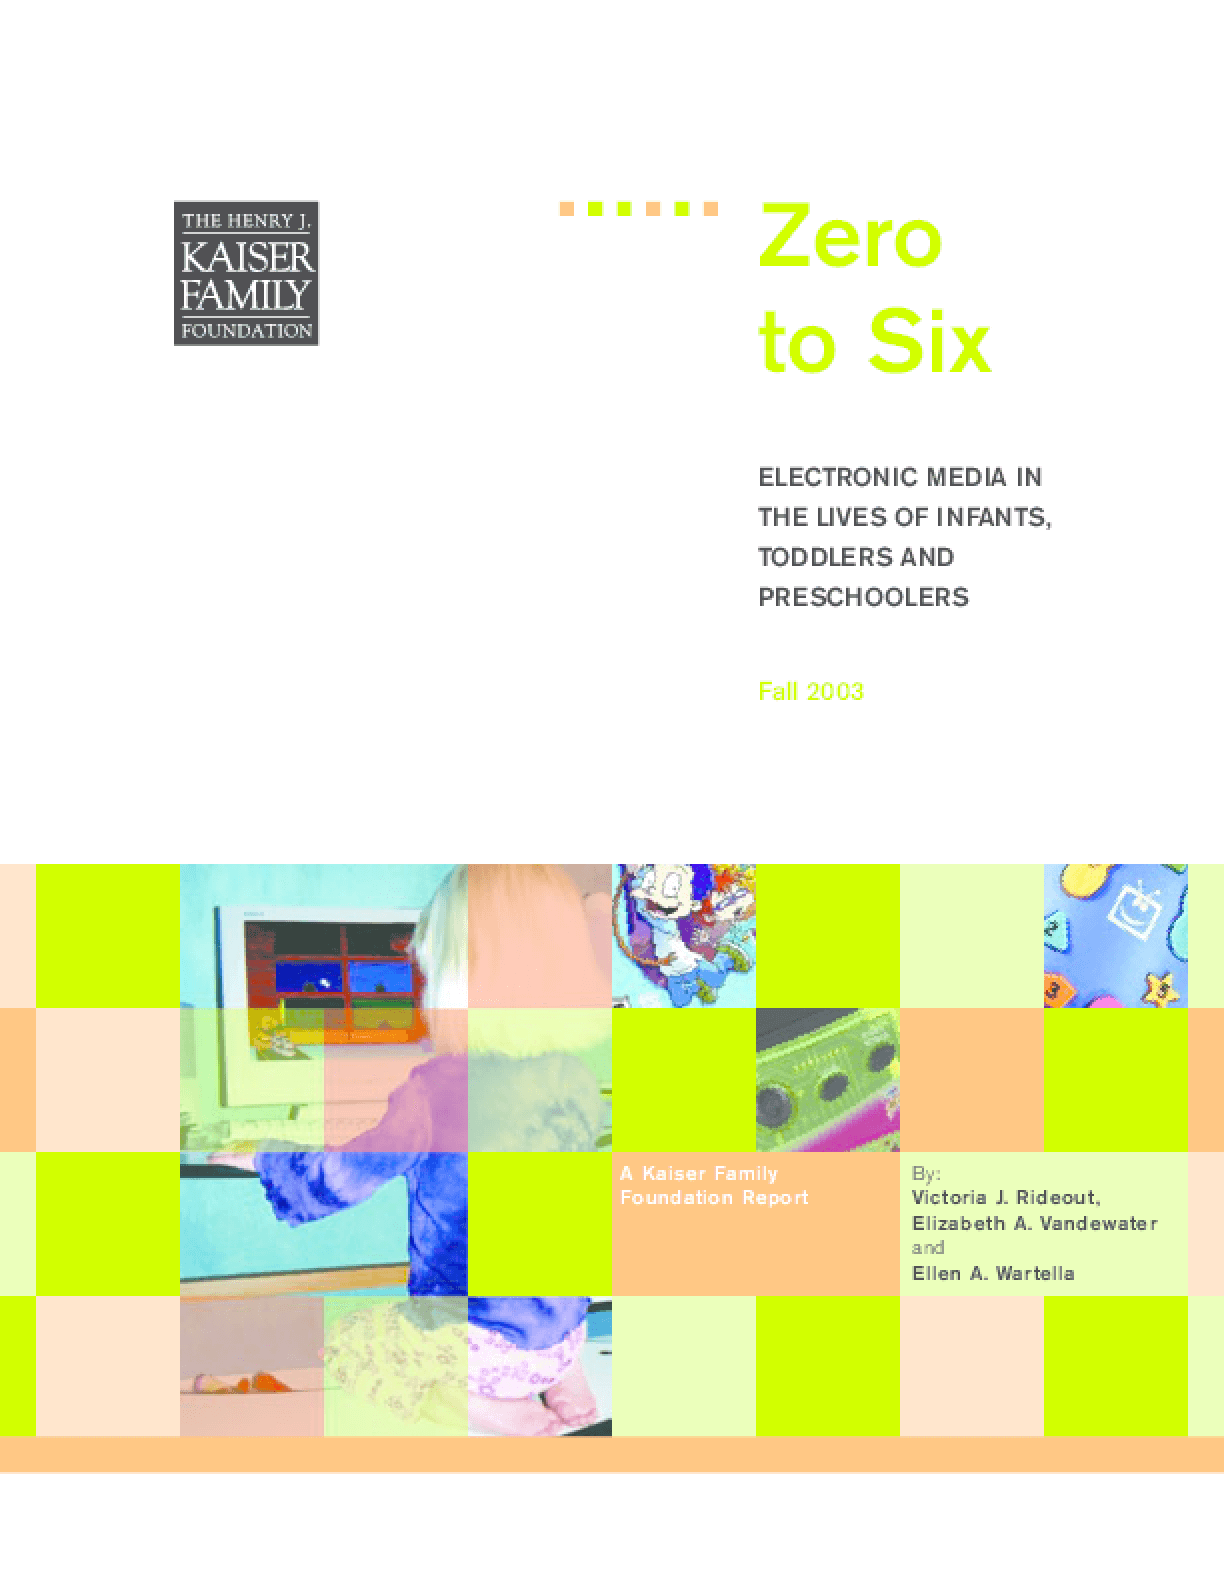 Zero to Six: Electronic Media in the Lives of Infants, Toddlers and Preschoolers